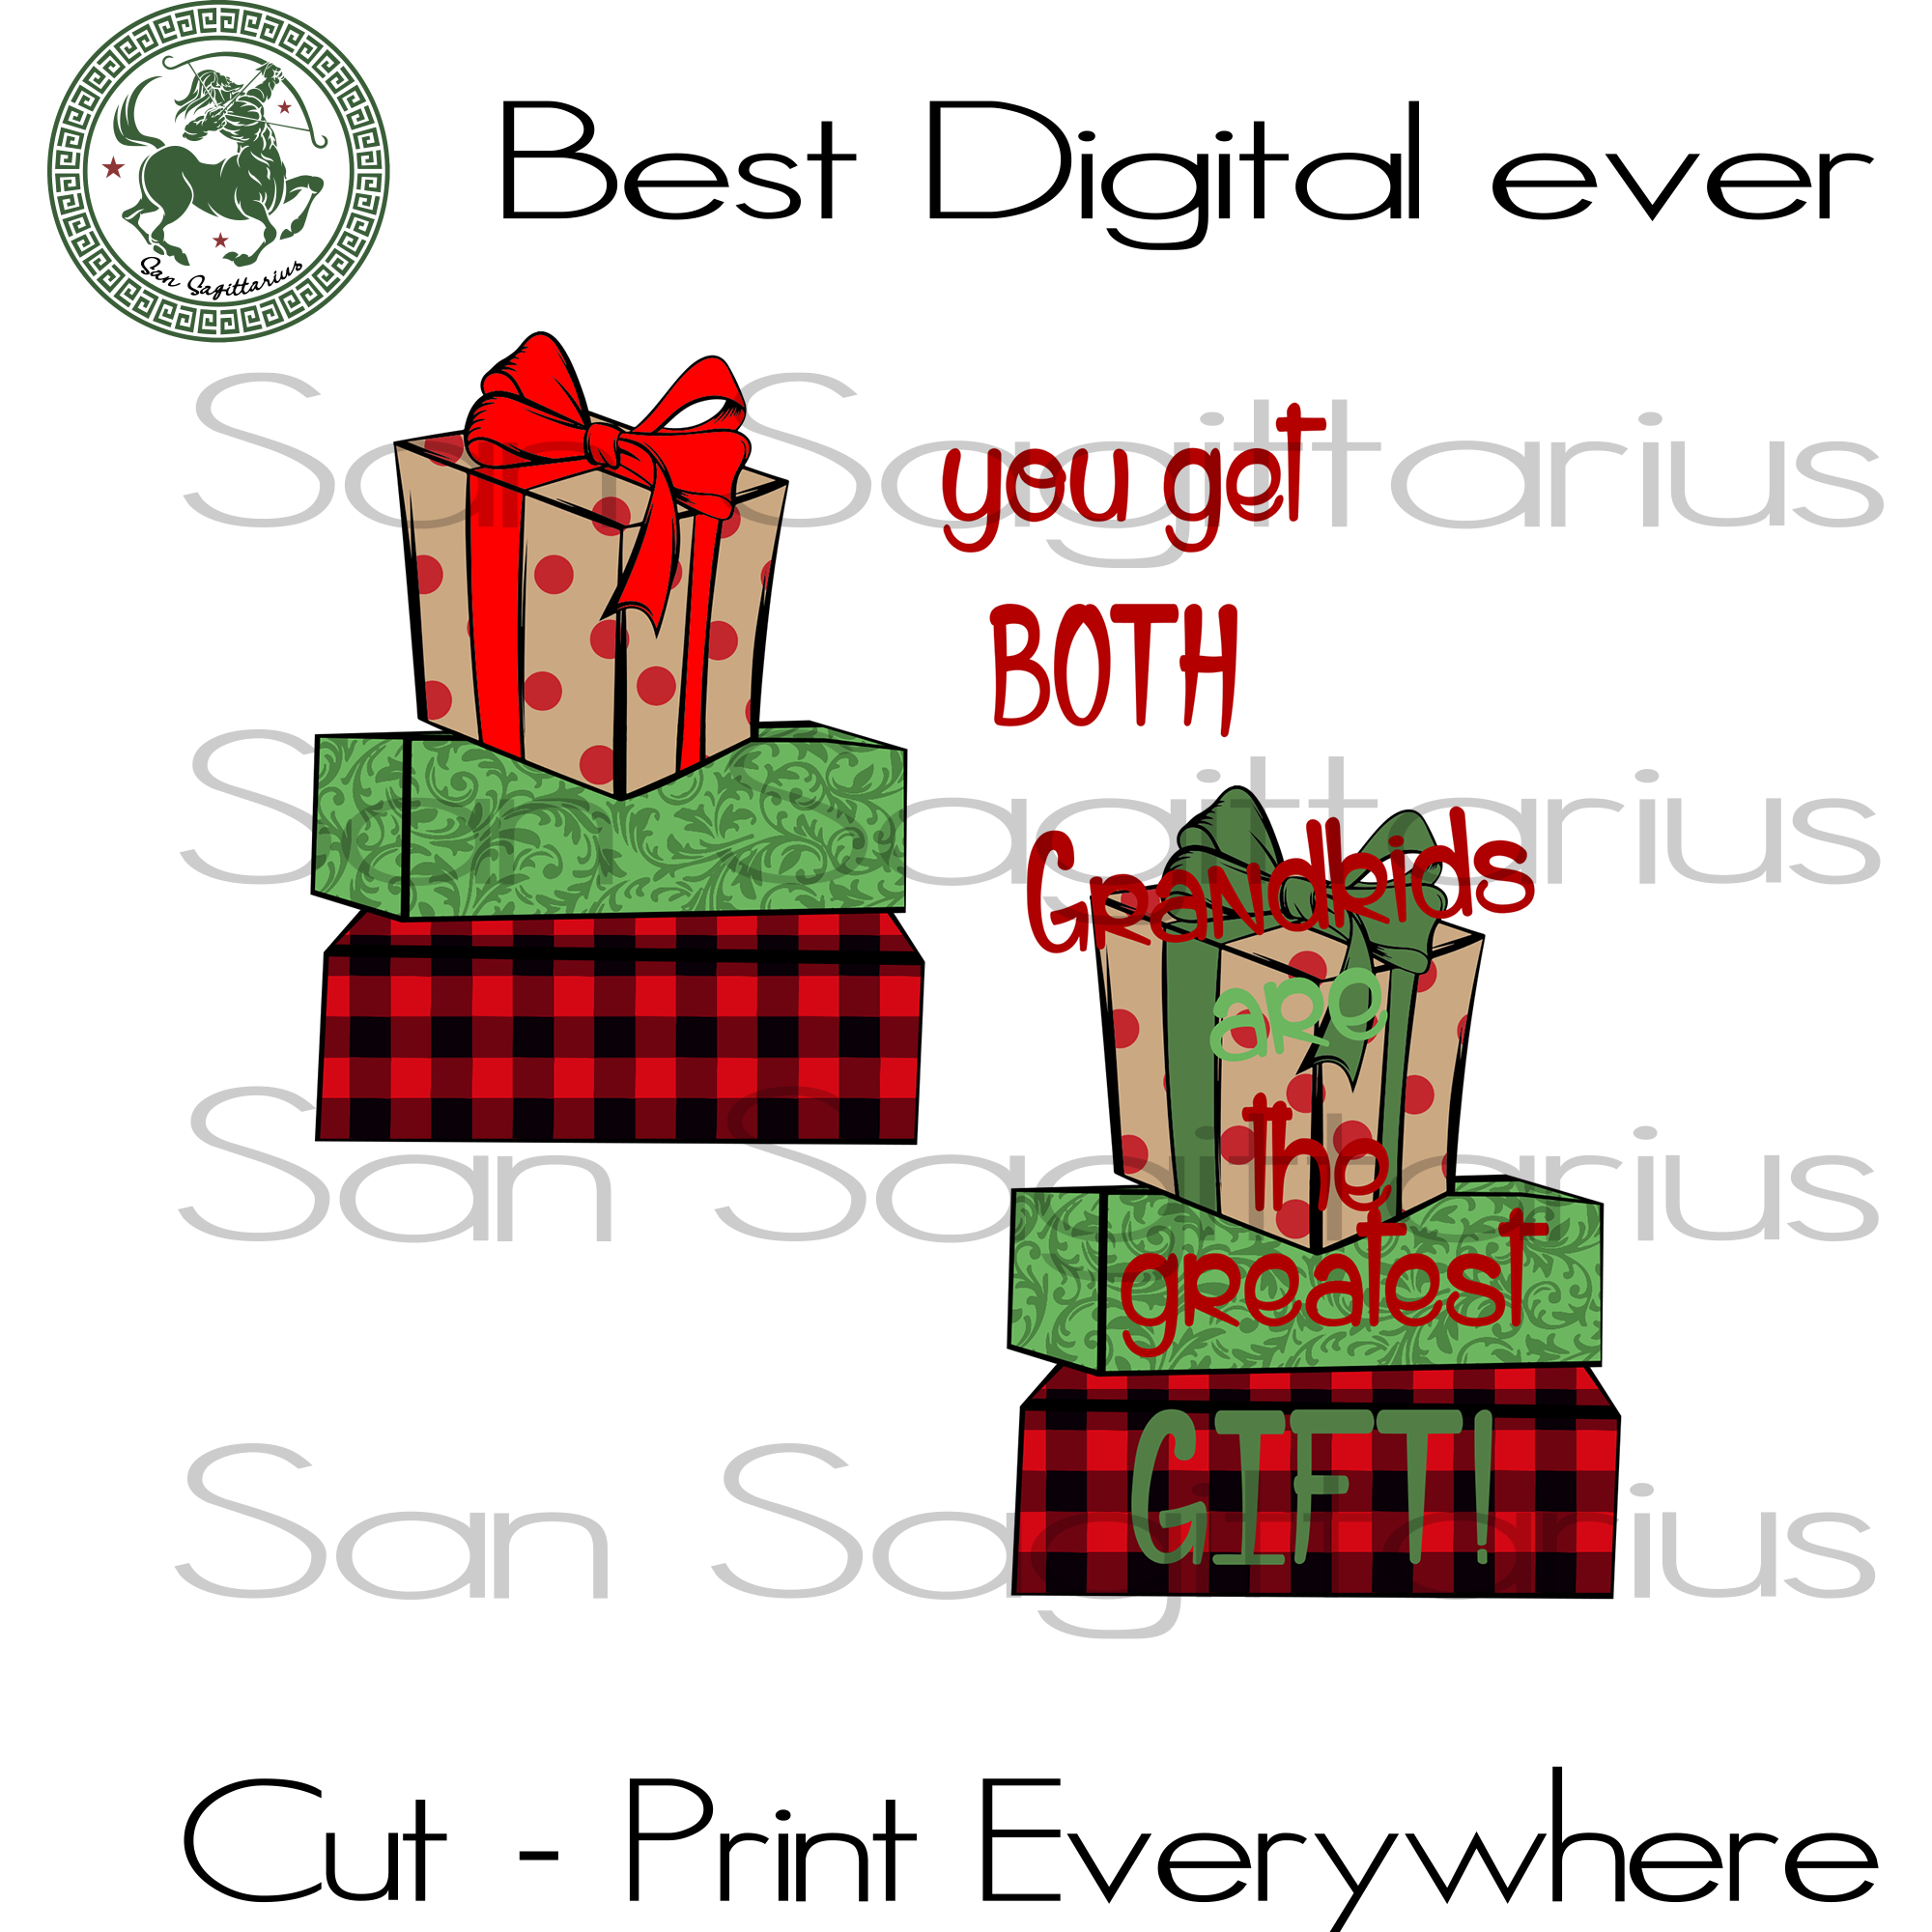 You Get Both Grandkids Are The Greatest Gift, Christmas Svg, Christmas Gifts, Merry Christmas, Christmas Holiday, Christmas Party, Funny Christmas, Xmas Gift, Christmas Gift Ideas, Merry Chri